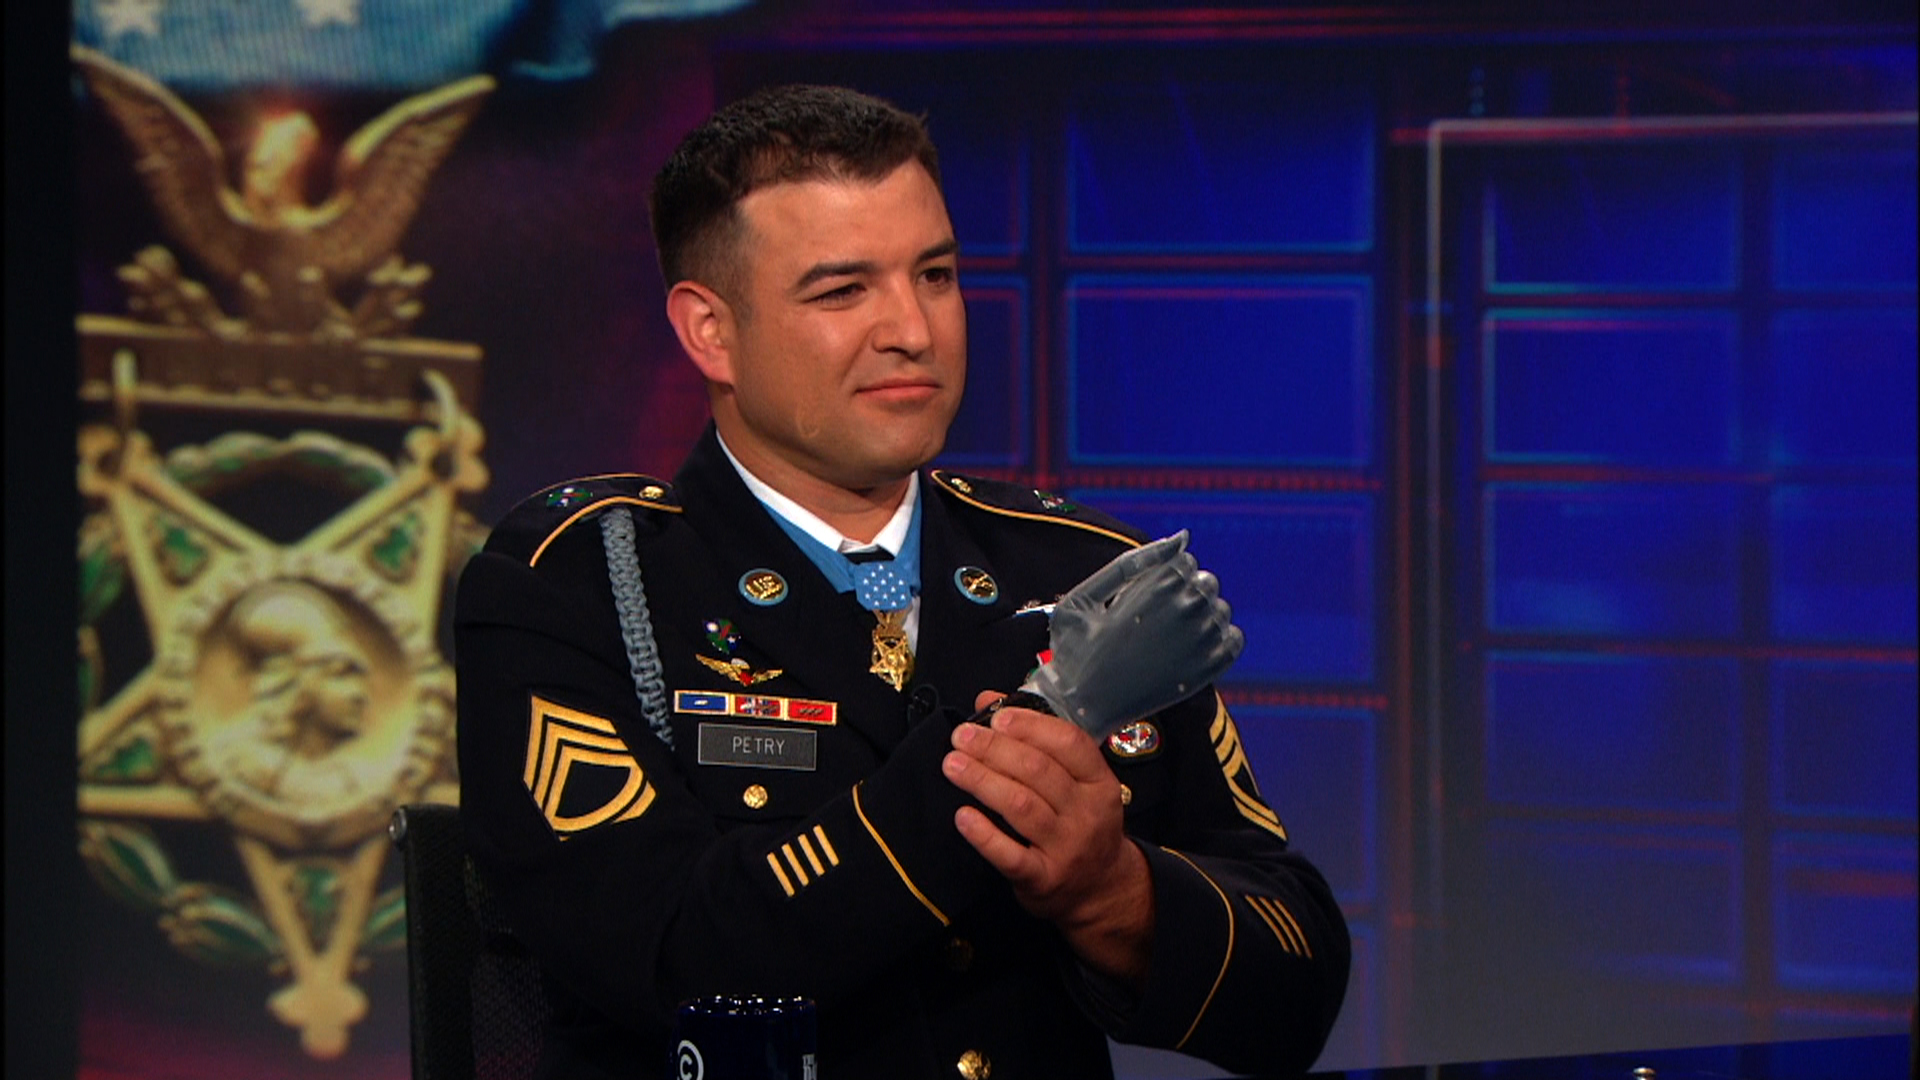 Exclusive - Leroy Petry Extended Interview Pt 1 | BahVideo.com